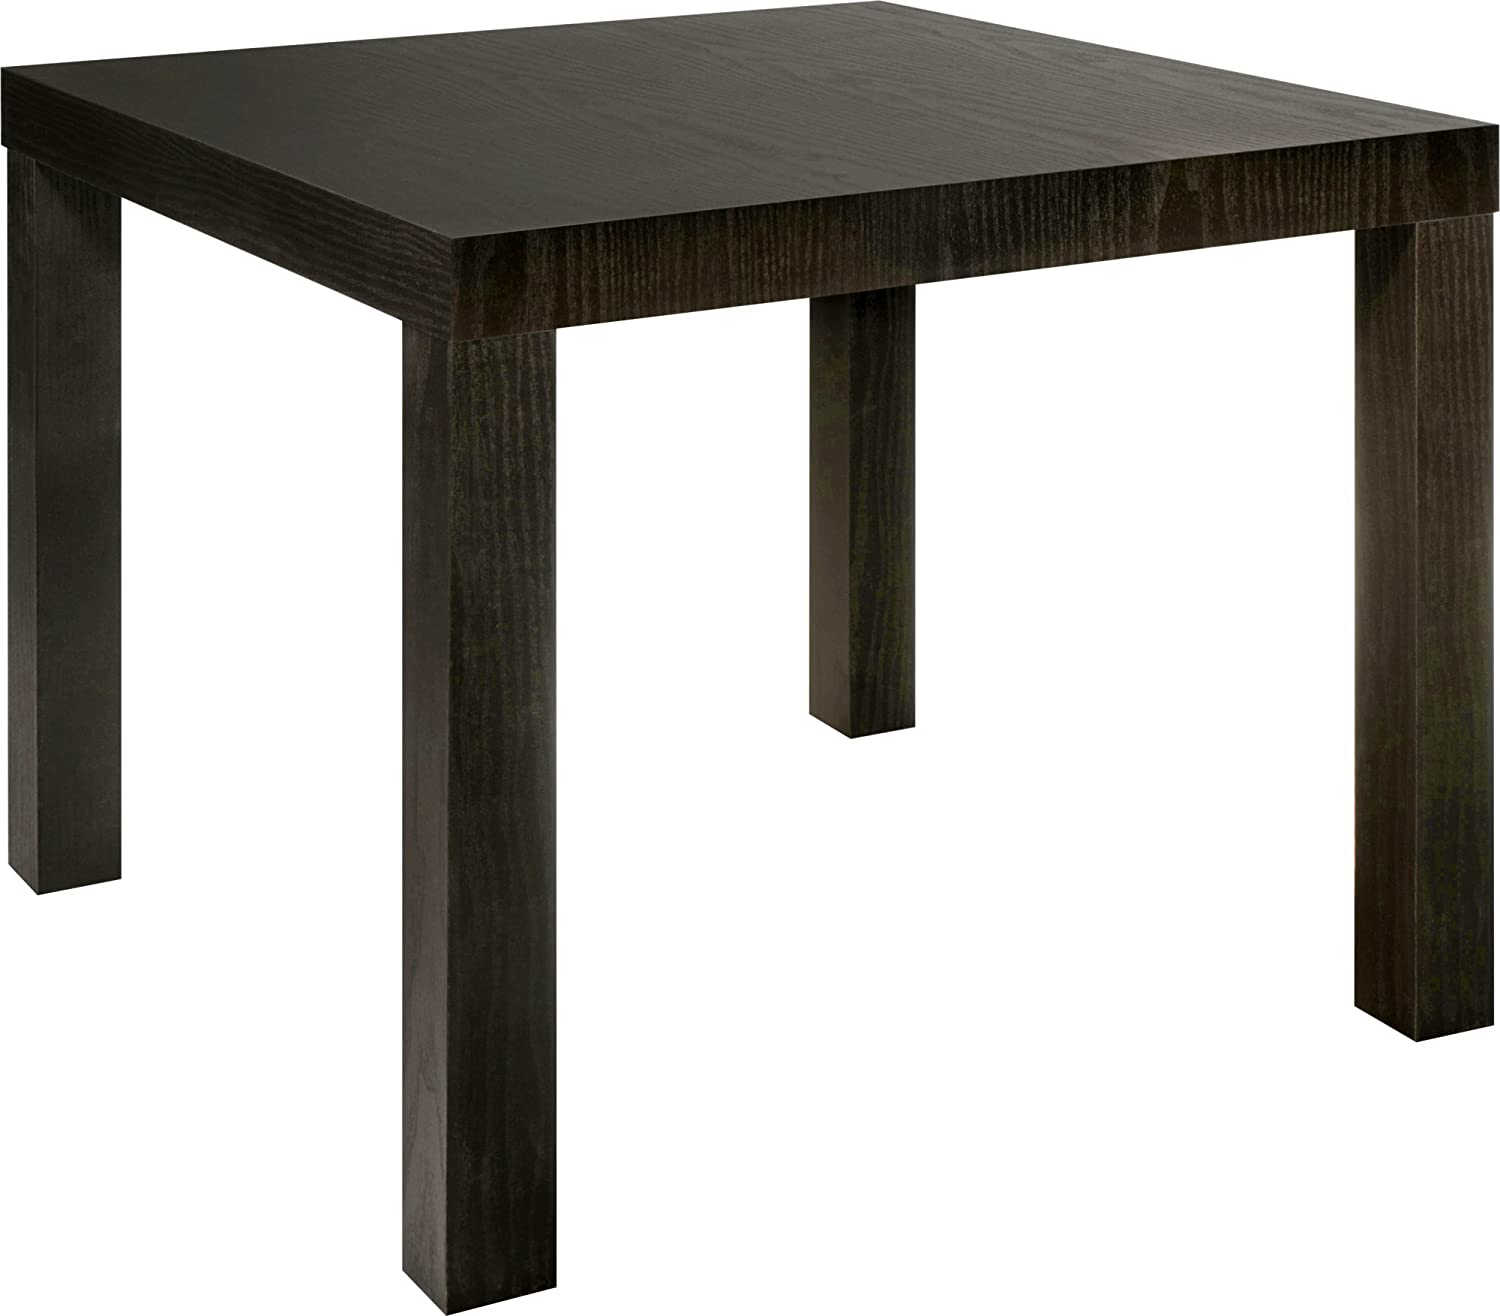 Amazon.com: DHP Parsons Modern End Table, Black Wood Grain: Kitchen U0026 Dining